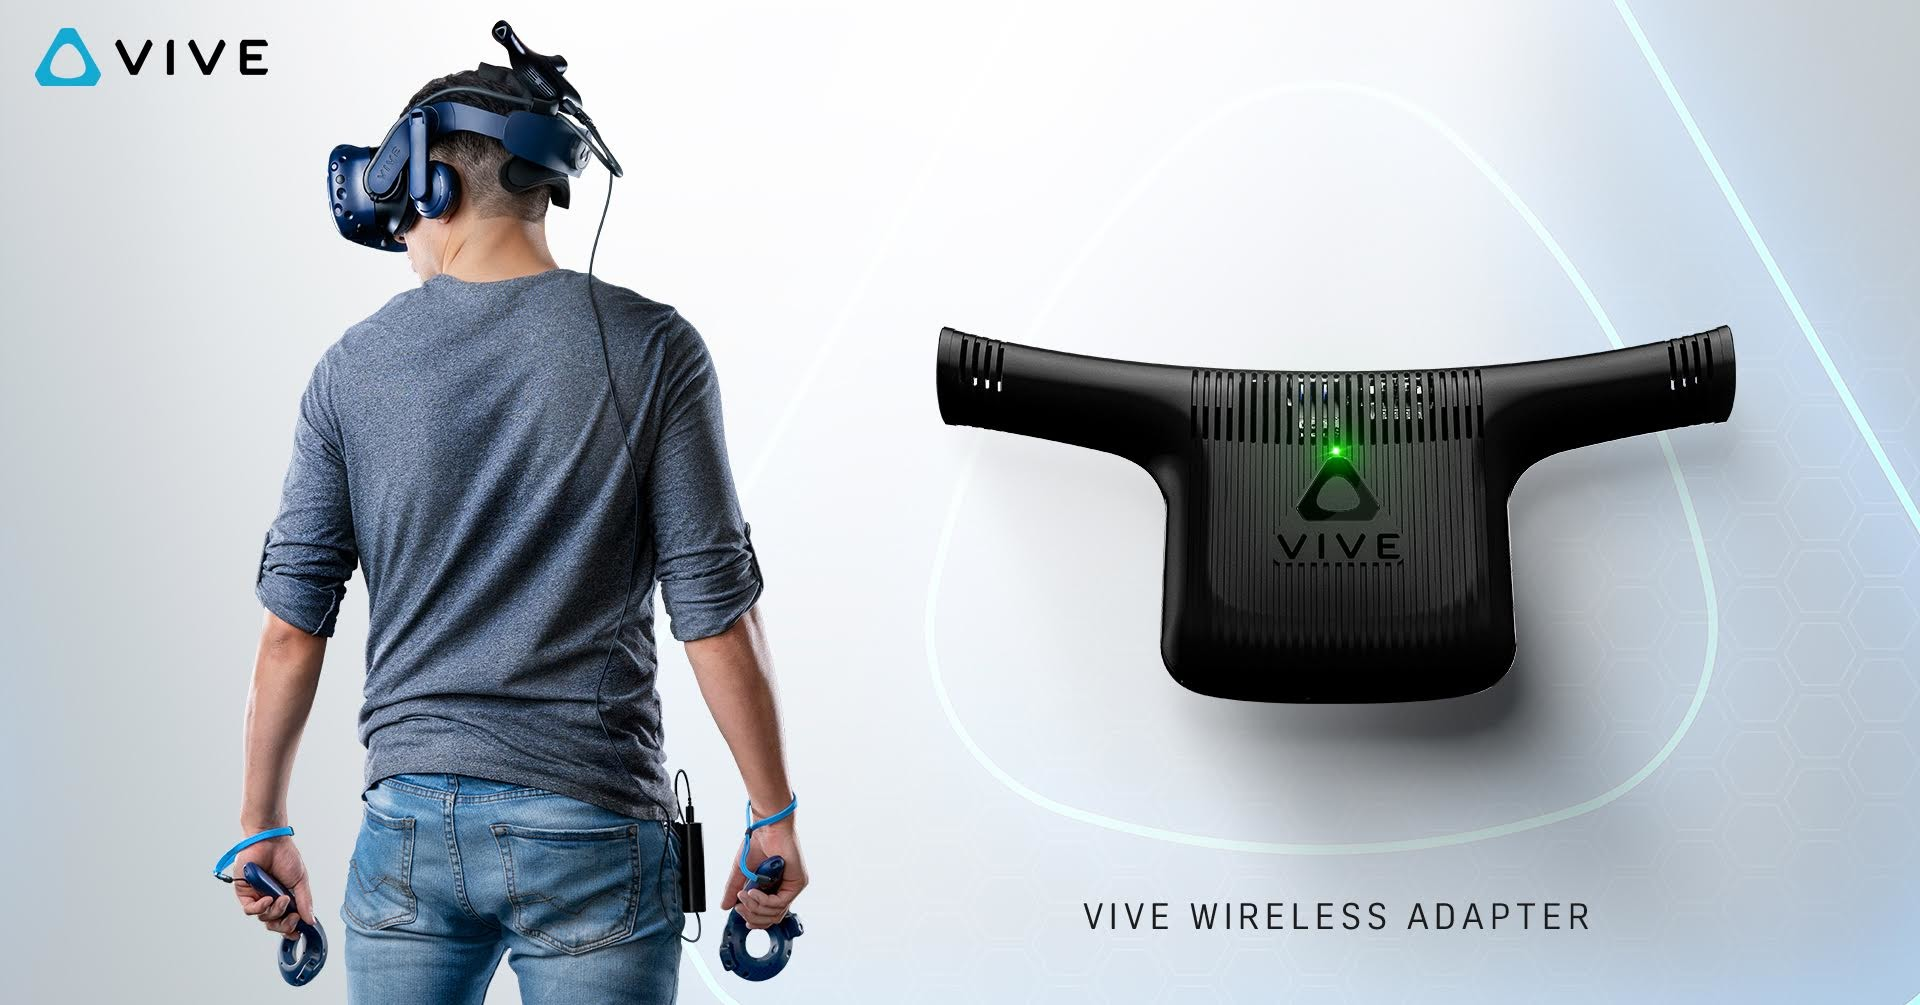 HTC Vive, Wireless, , HTC, Headset, Virtual reality, TRAPPED: A VR Detective Story, HTC Vive - Virtual Reality Headset, Wireless network interface controller, Virtual reality headset, HTC Vive, product, shoulder, product, t shirt, arm, audio equipment, technology, neck, audio, joint